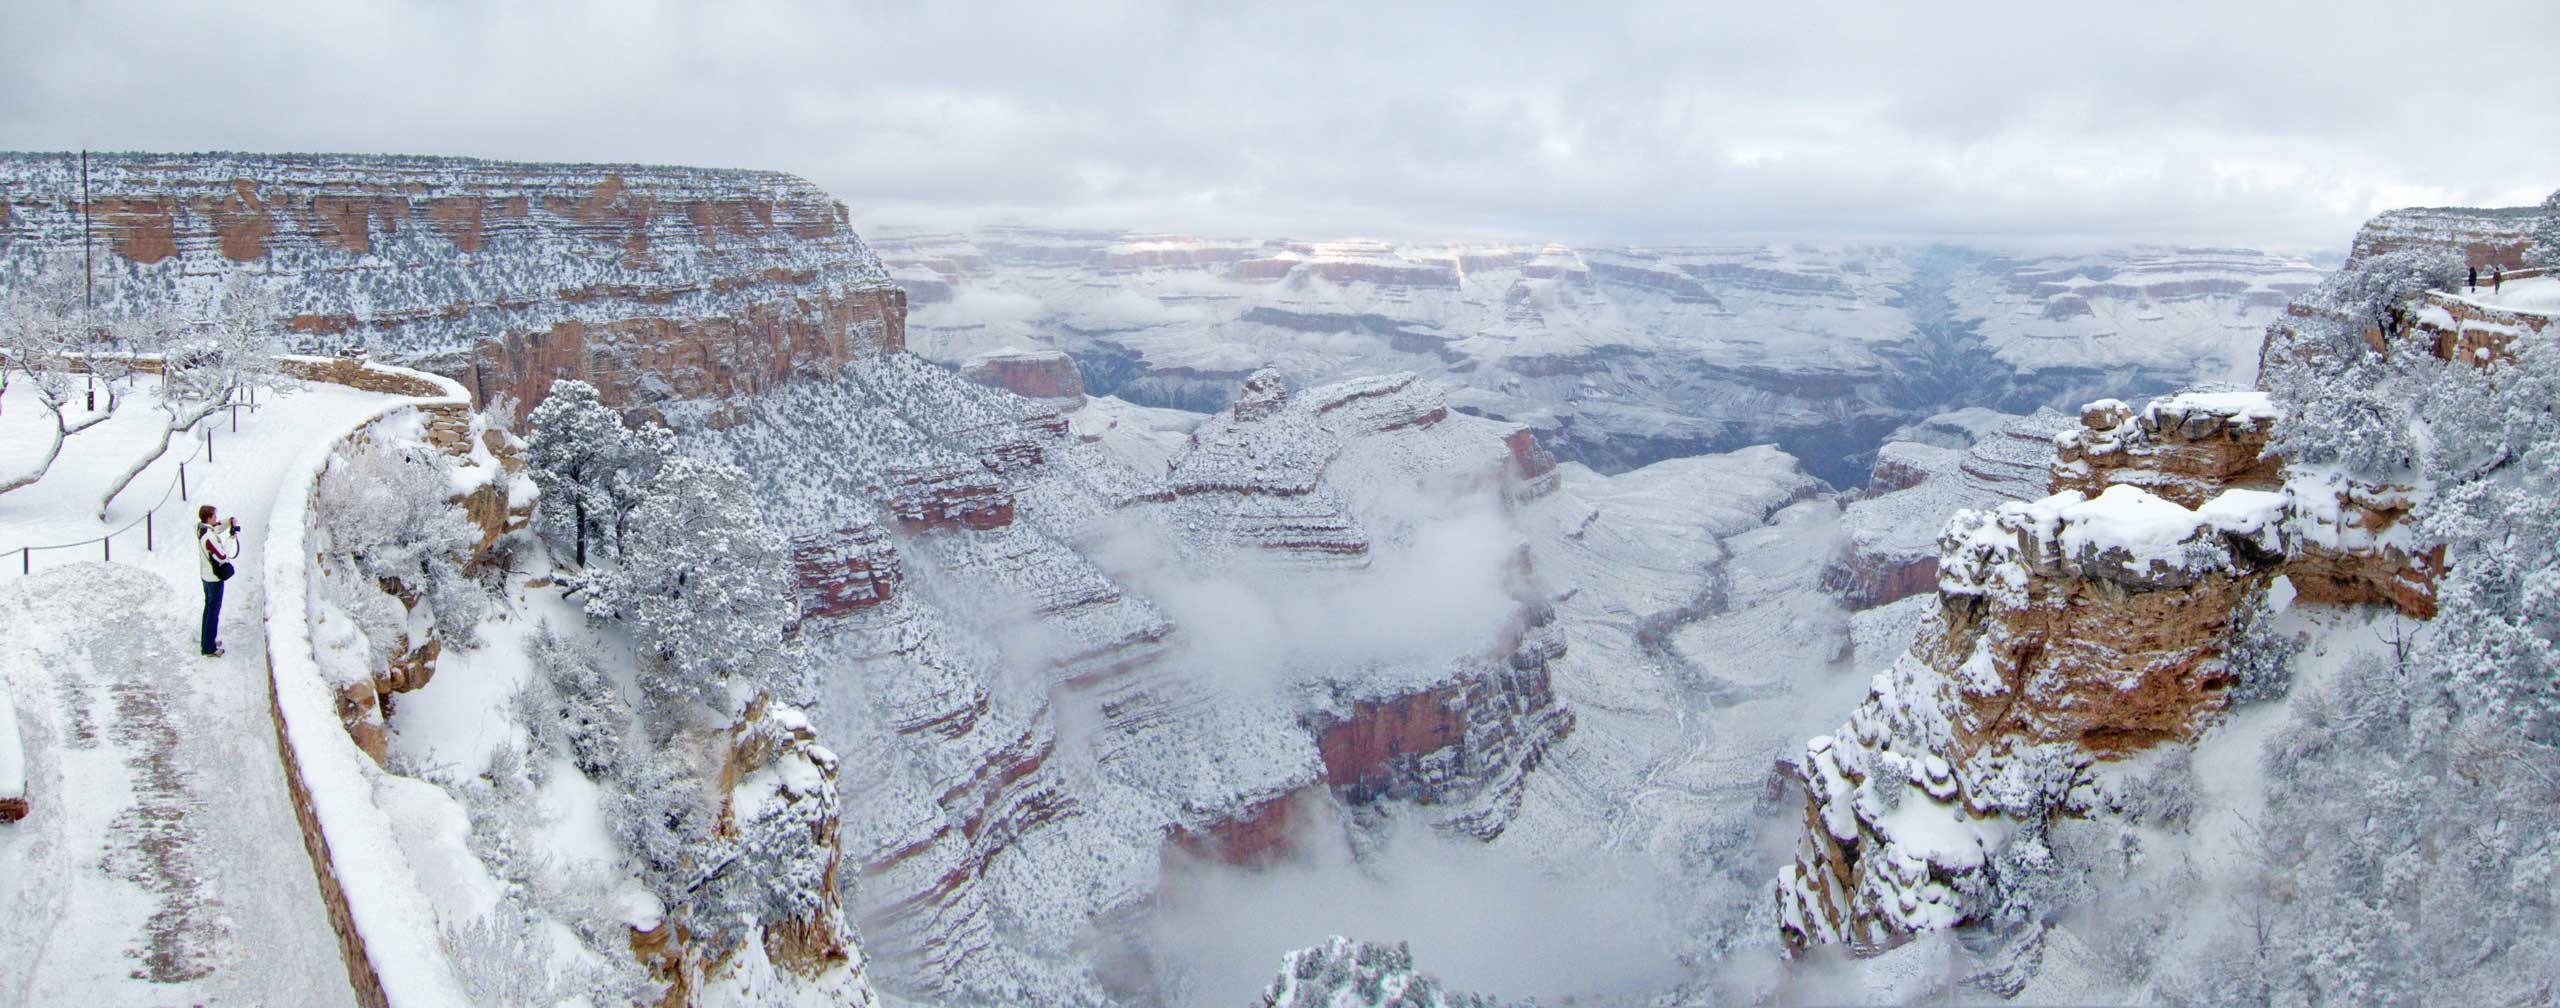 The Grand Canyon, blanketed in snow following a snowstorm, on New Year's Day.